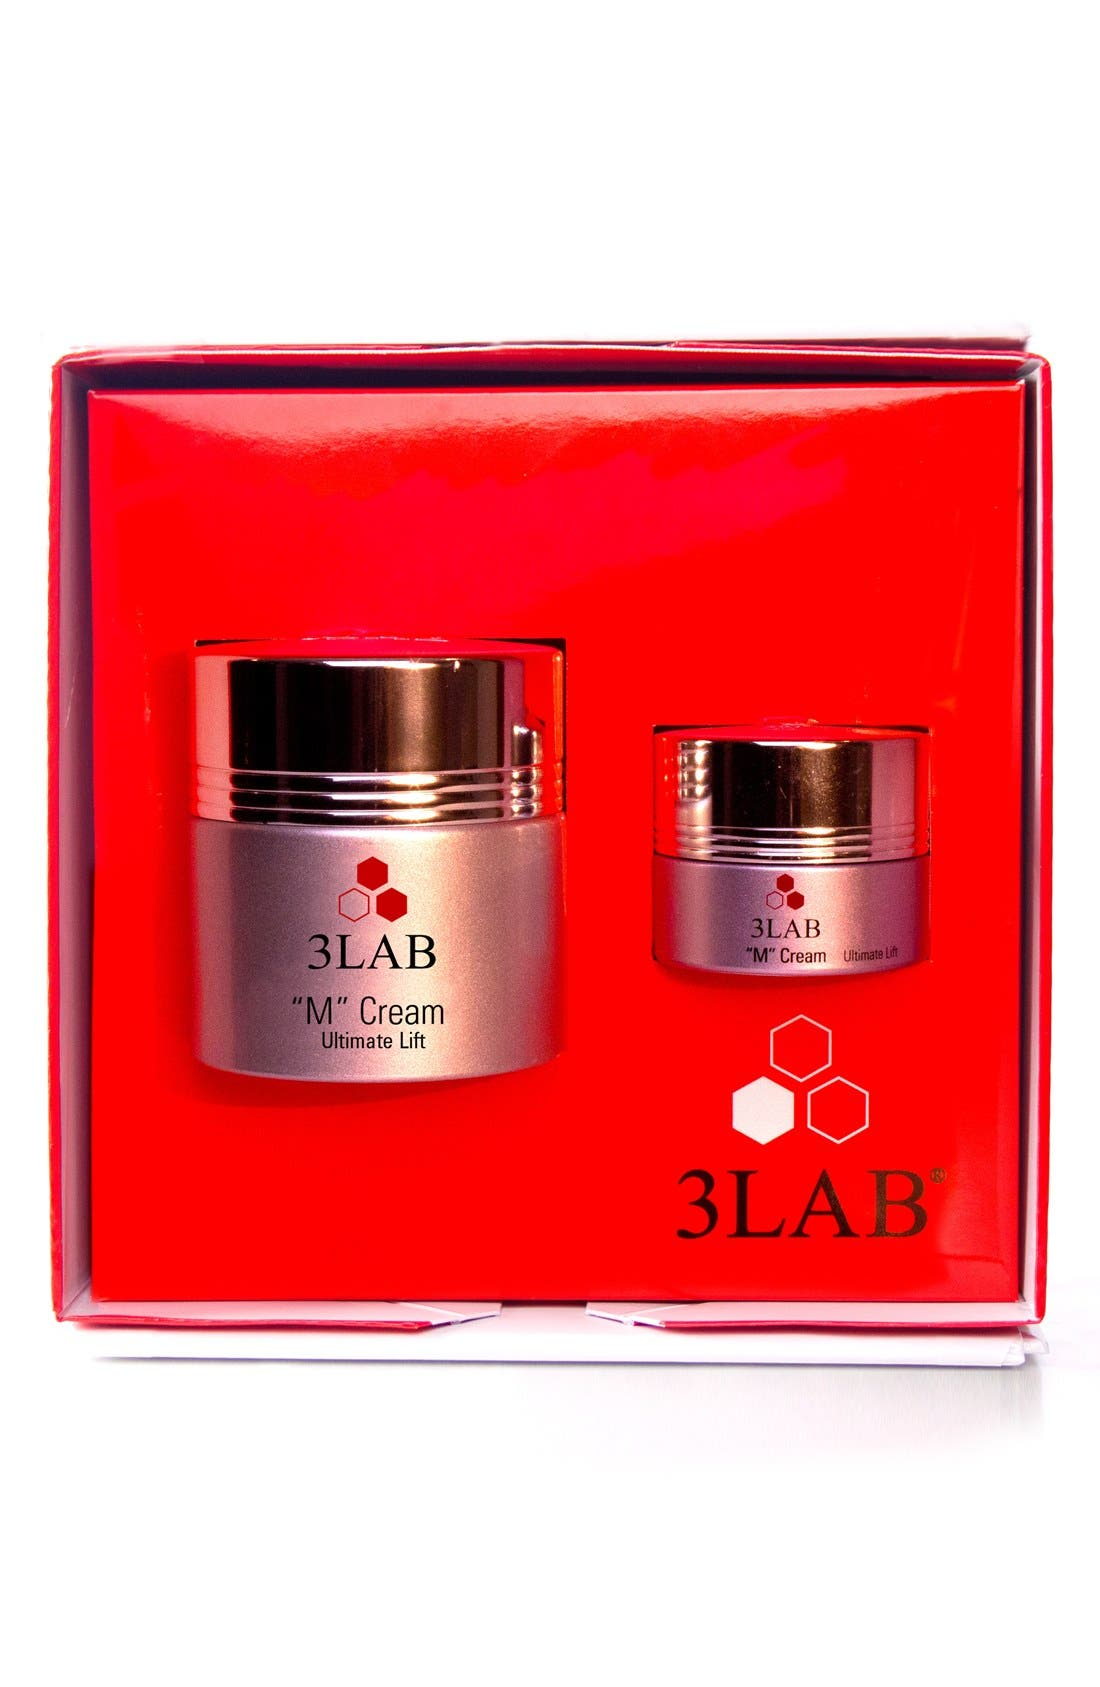 3LAB 'M' Ultimate Lift Cream Set (Limited Edition) ($362.50 Value)